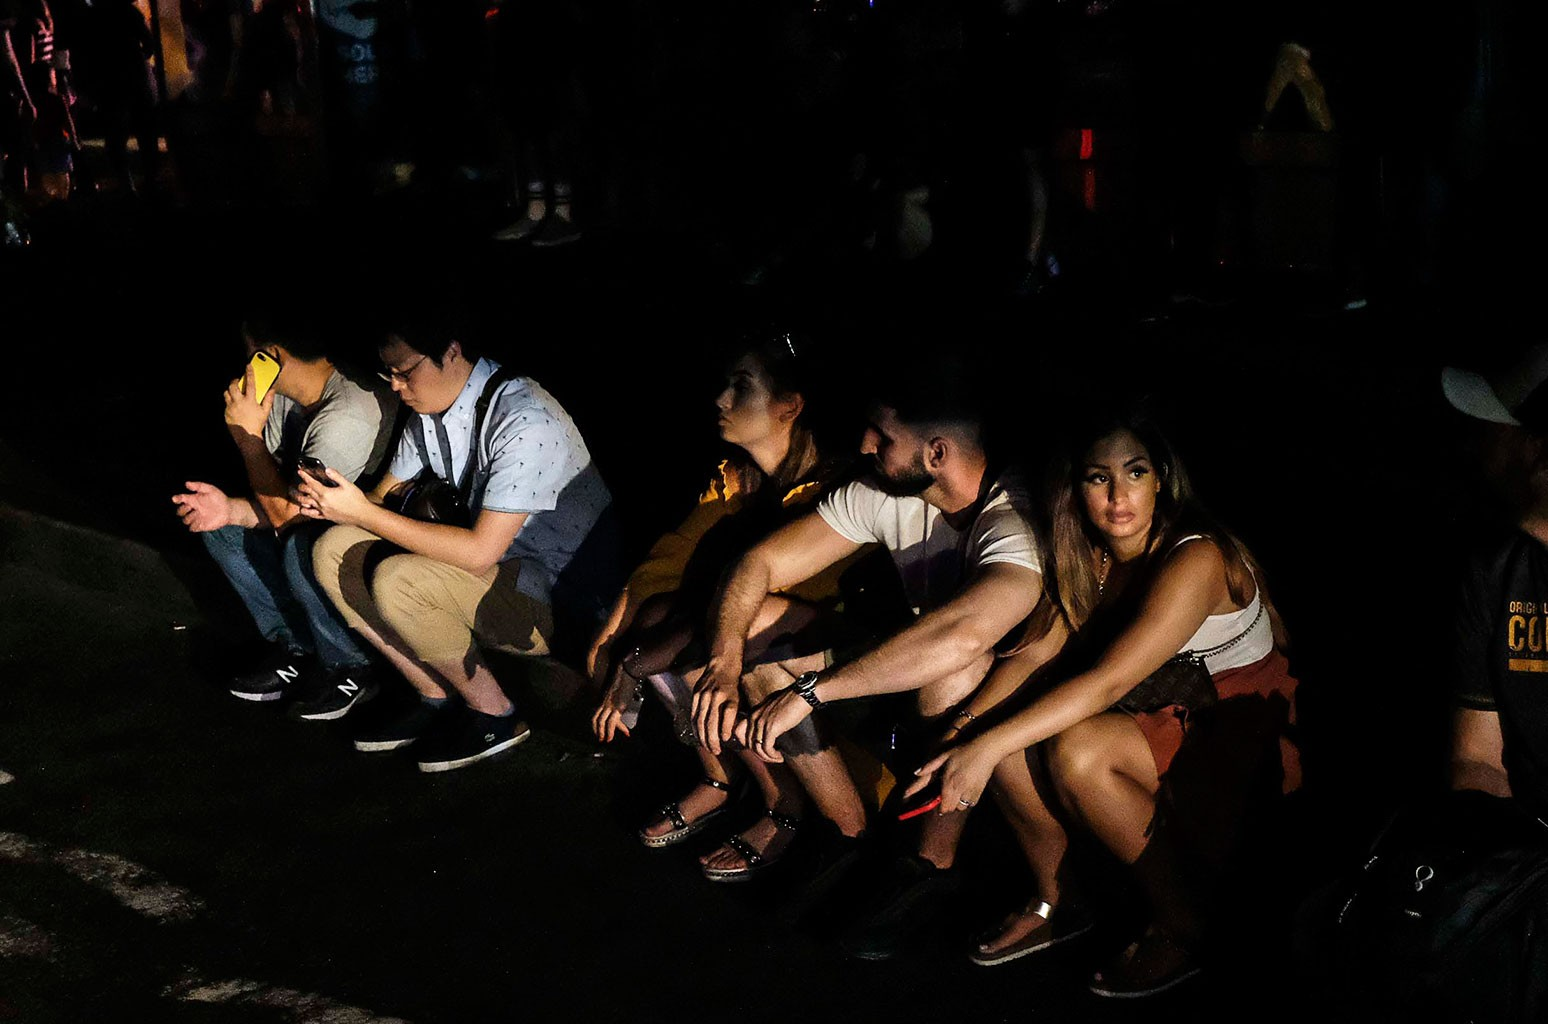 New York City Power outage